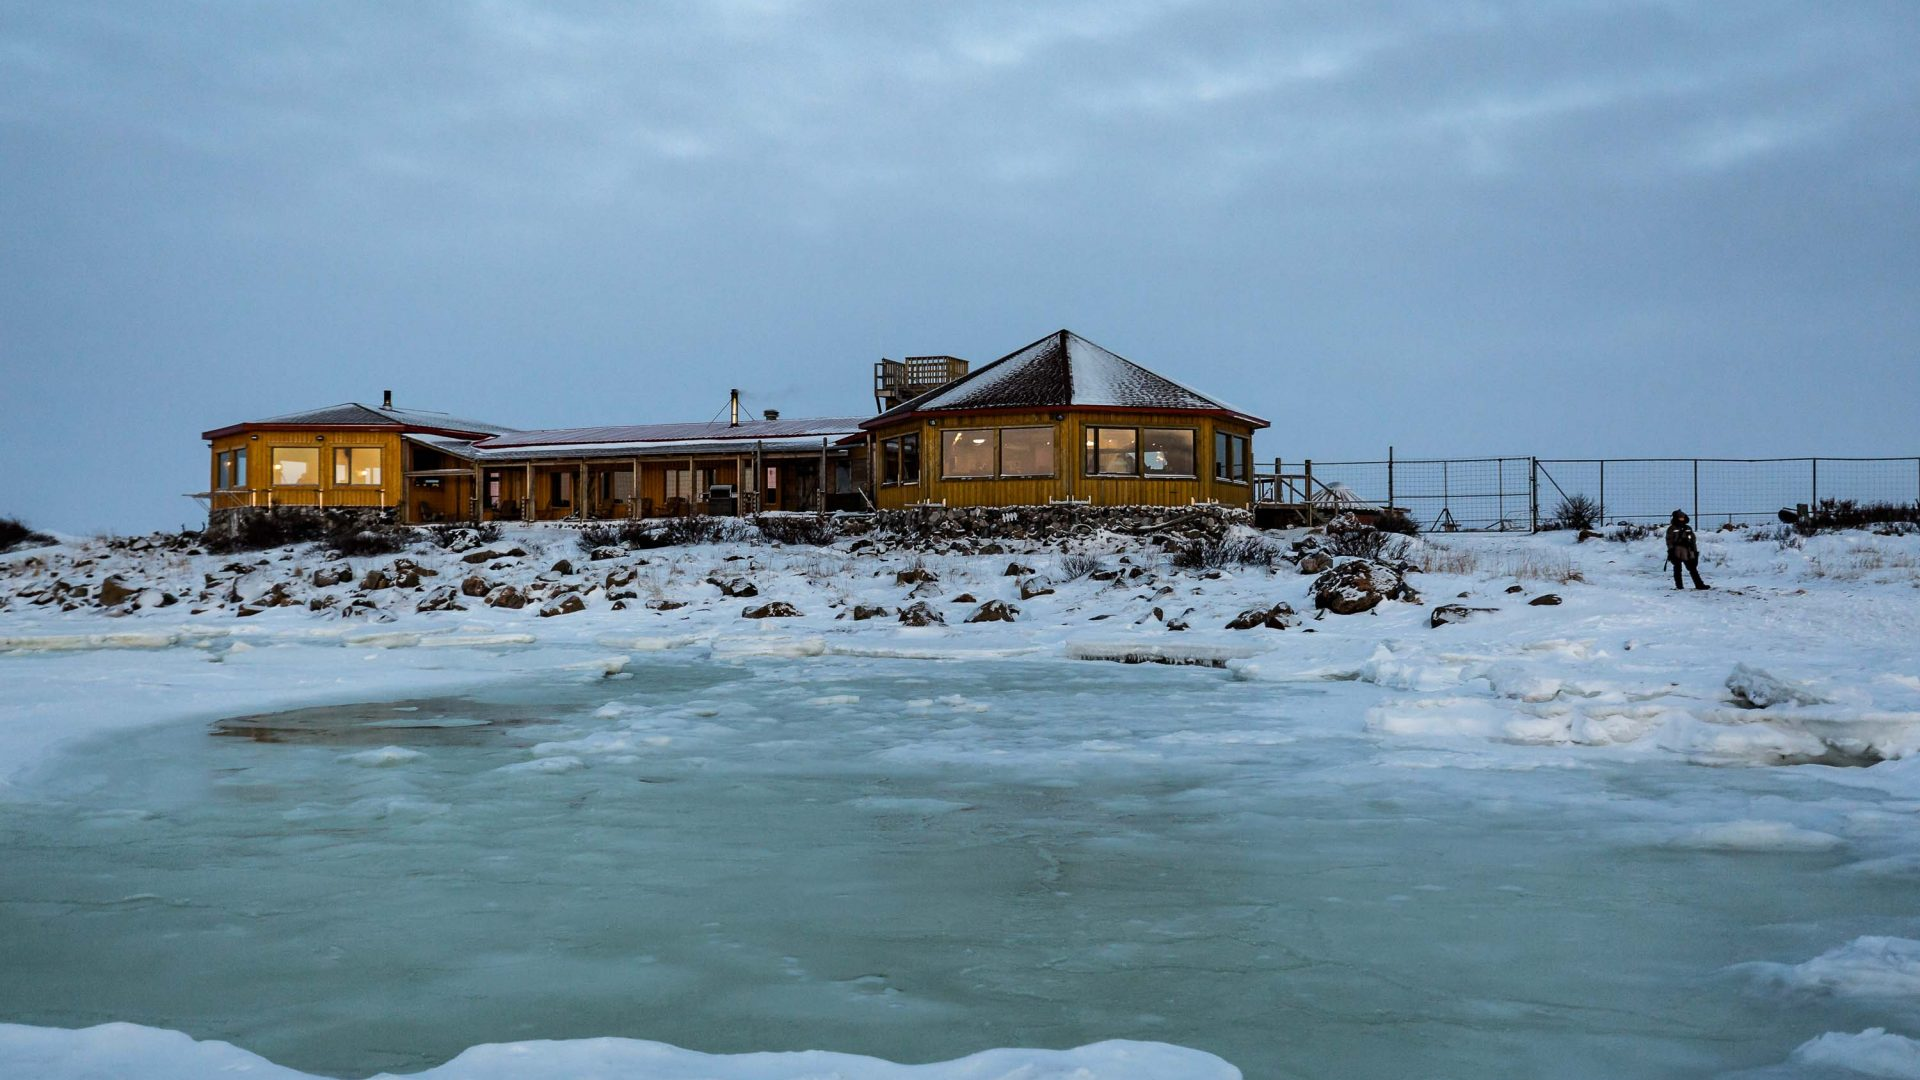 Seal River Lodge is on the polar bear's migration route in Manitoba, Canada, making it ideal for wildlife sightings.